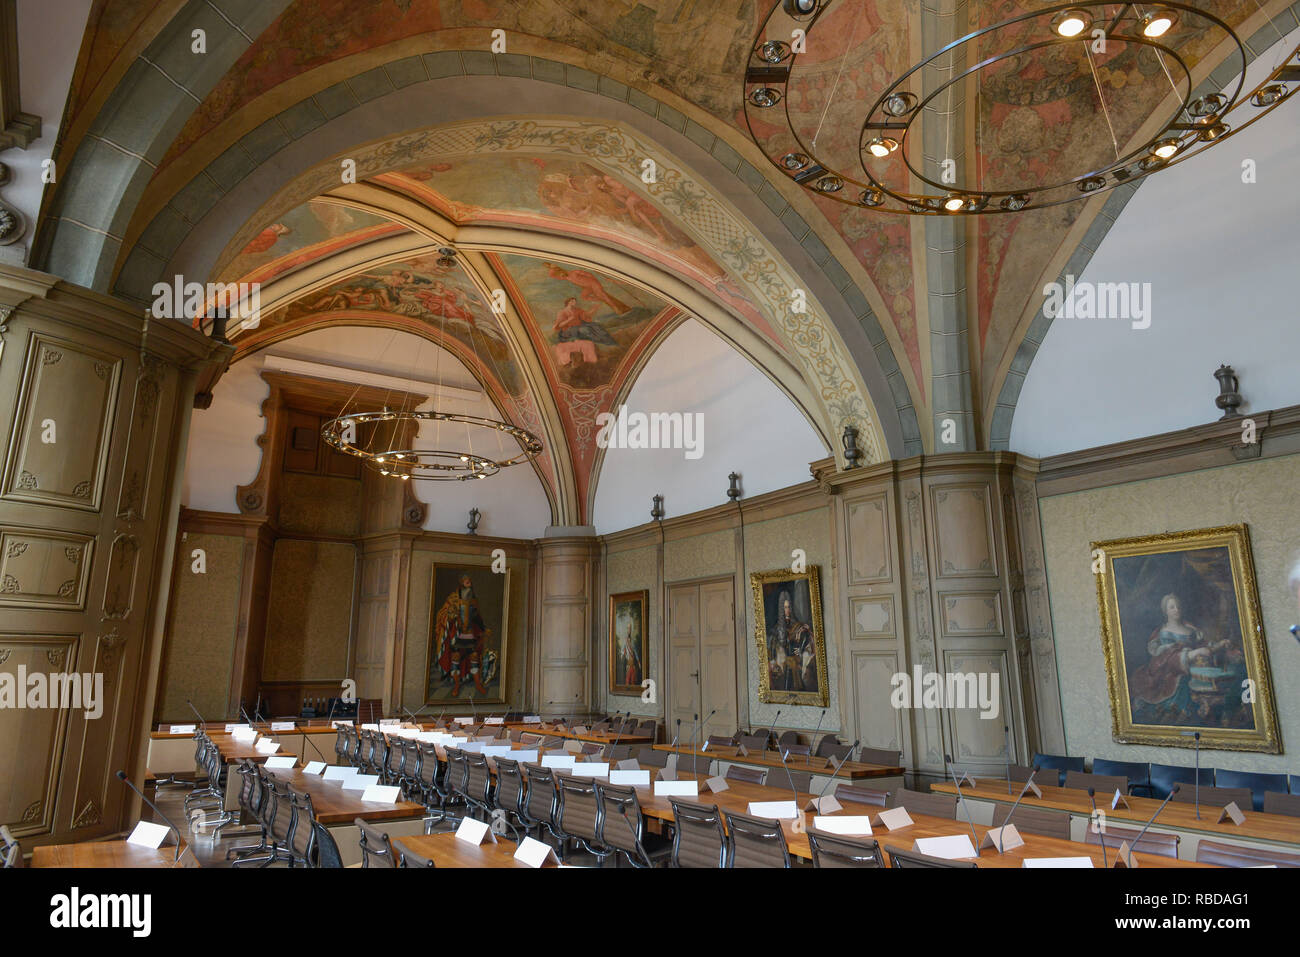 Meeting hall, city hall, Aachen, North Rhine-Westphalia, Germany, Sitzungssaal, Rathaus, Nordrhein-Westfalen, Deutschland Stock Photo